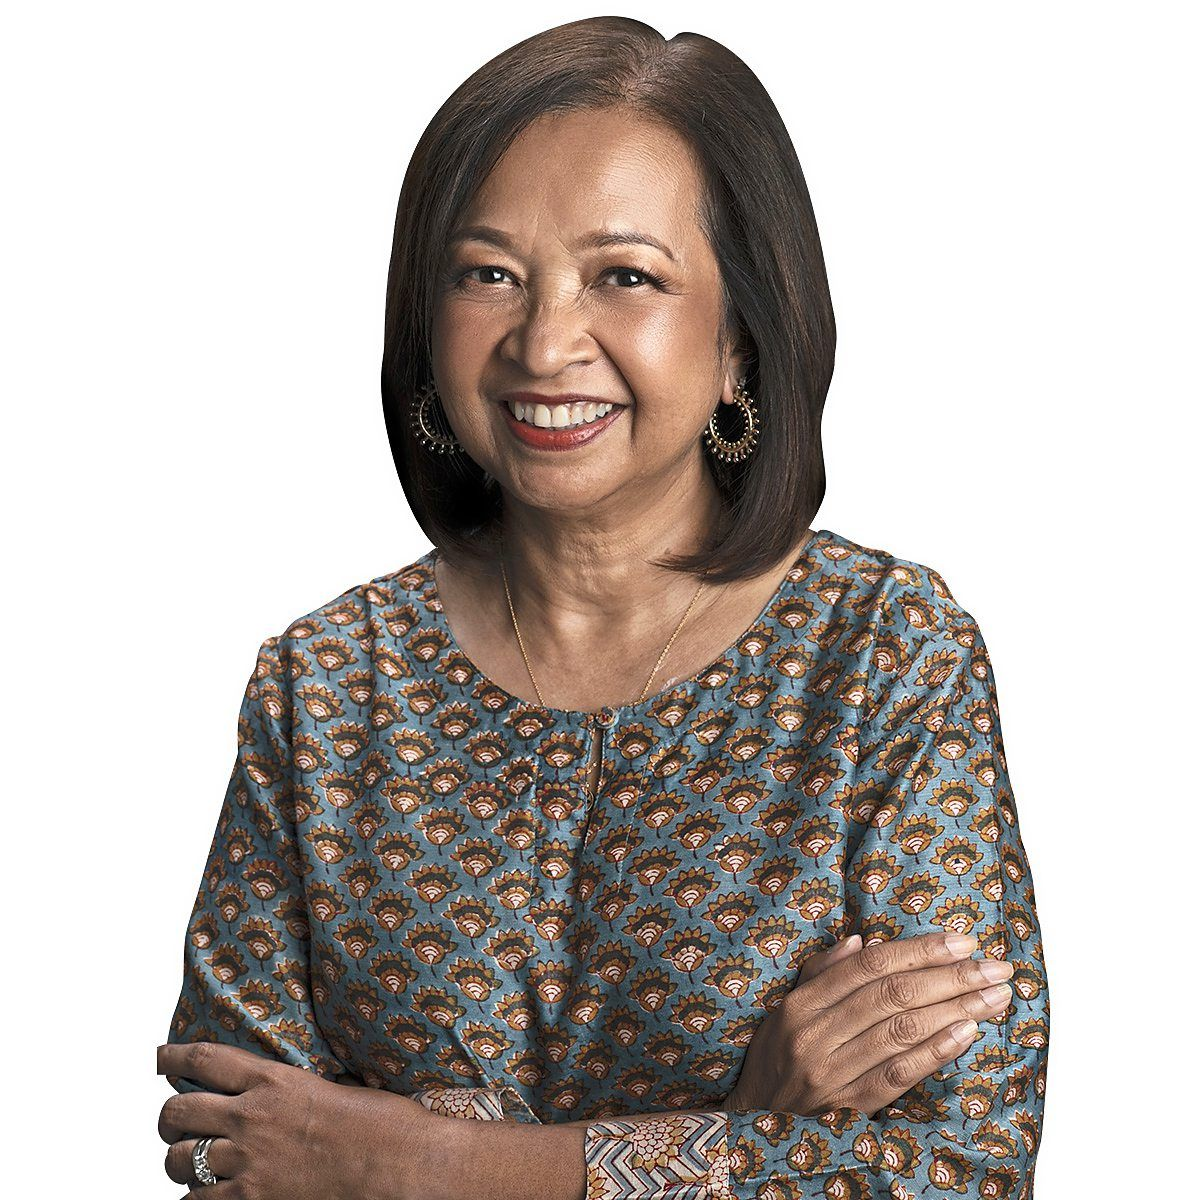 Activist and writer Datin Paduka Marina Mahathir will talk about what the future of leadership should be (Aug 8).